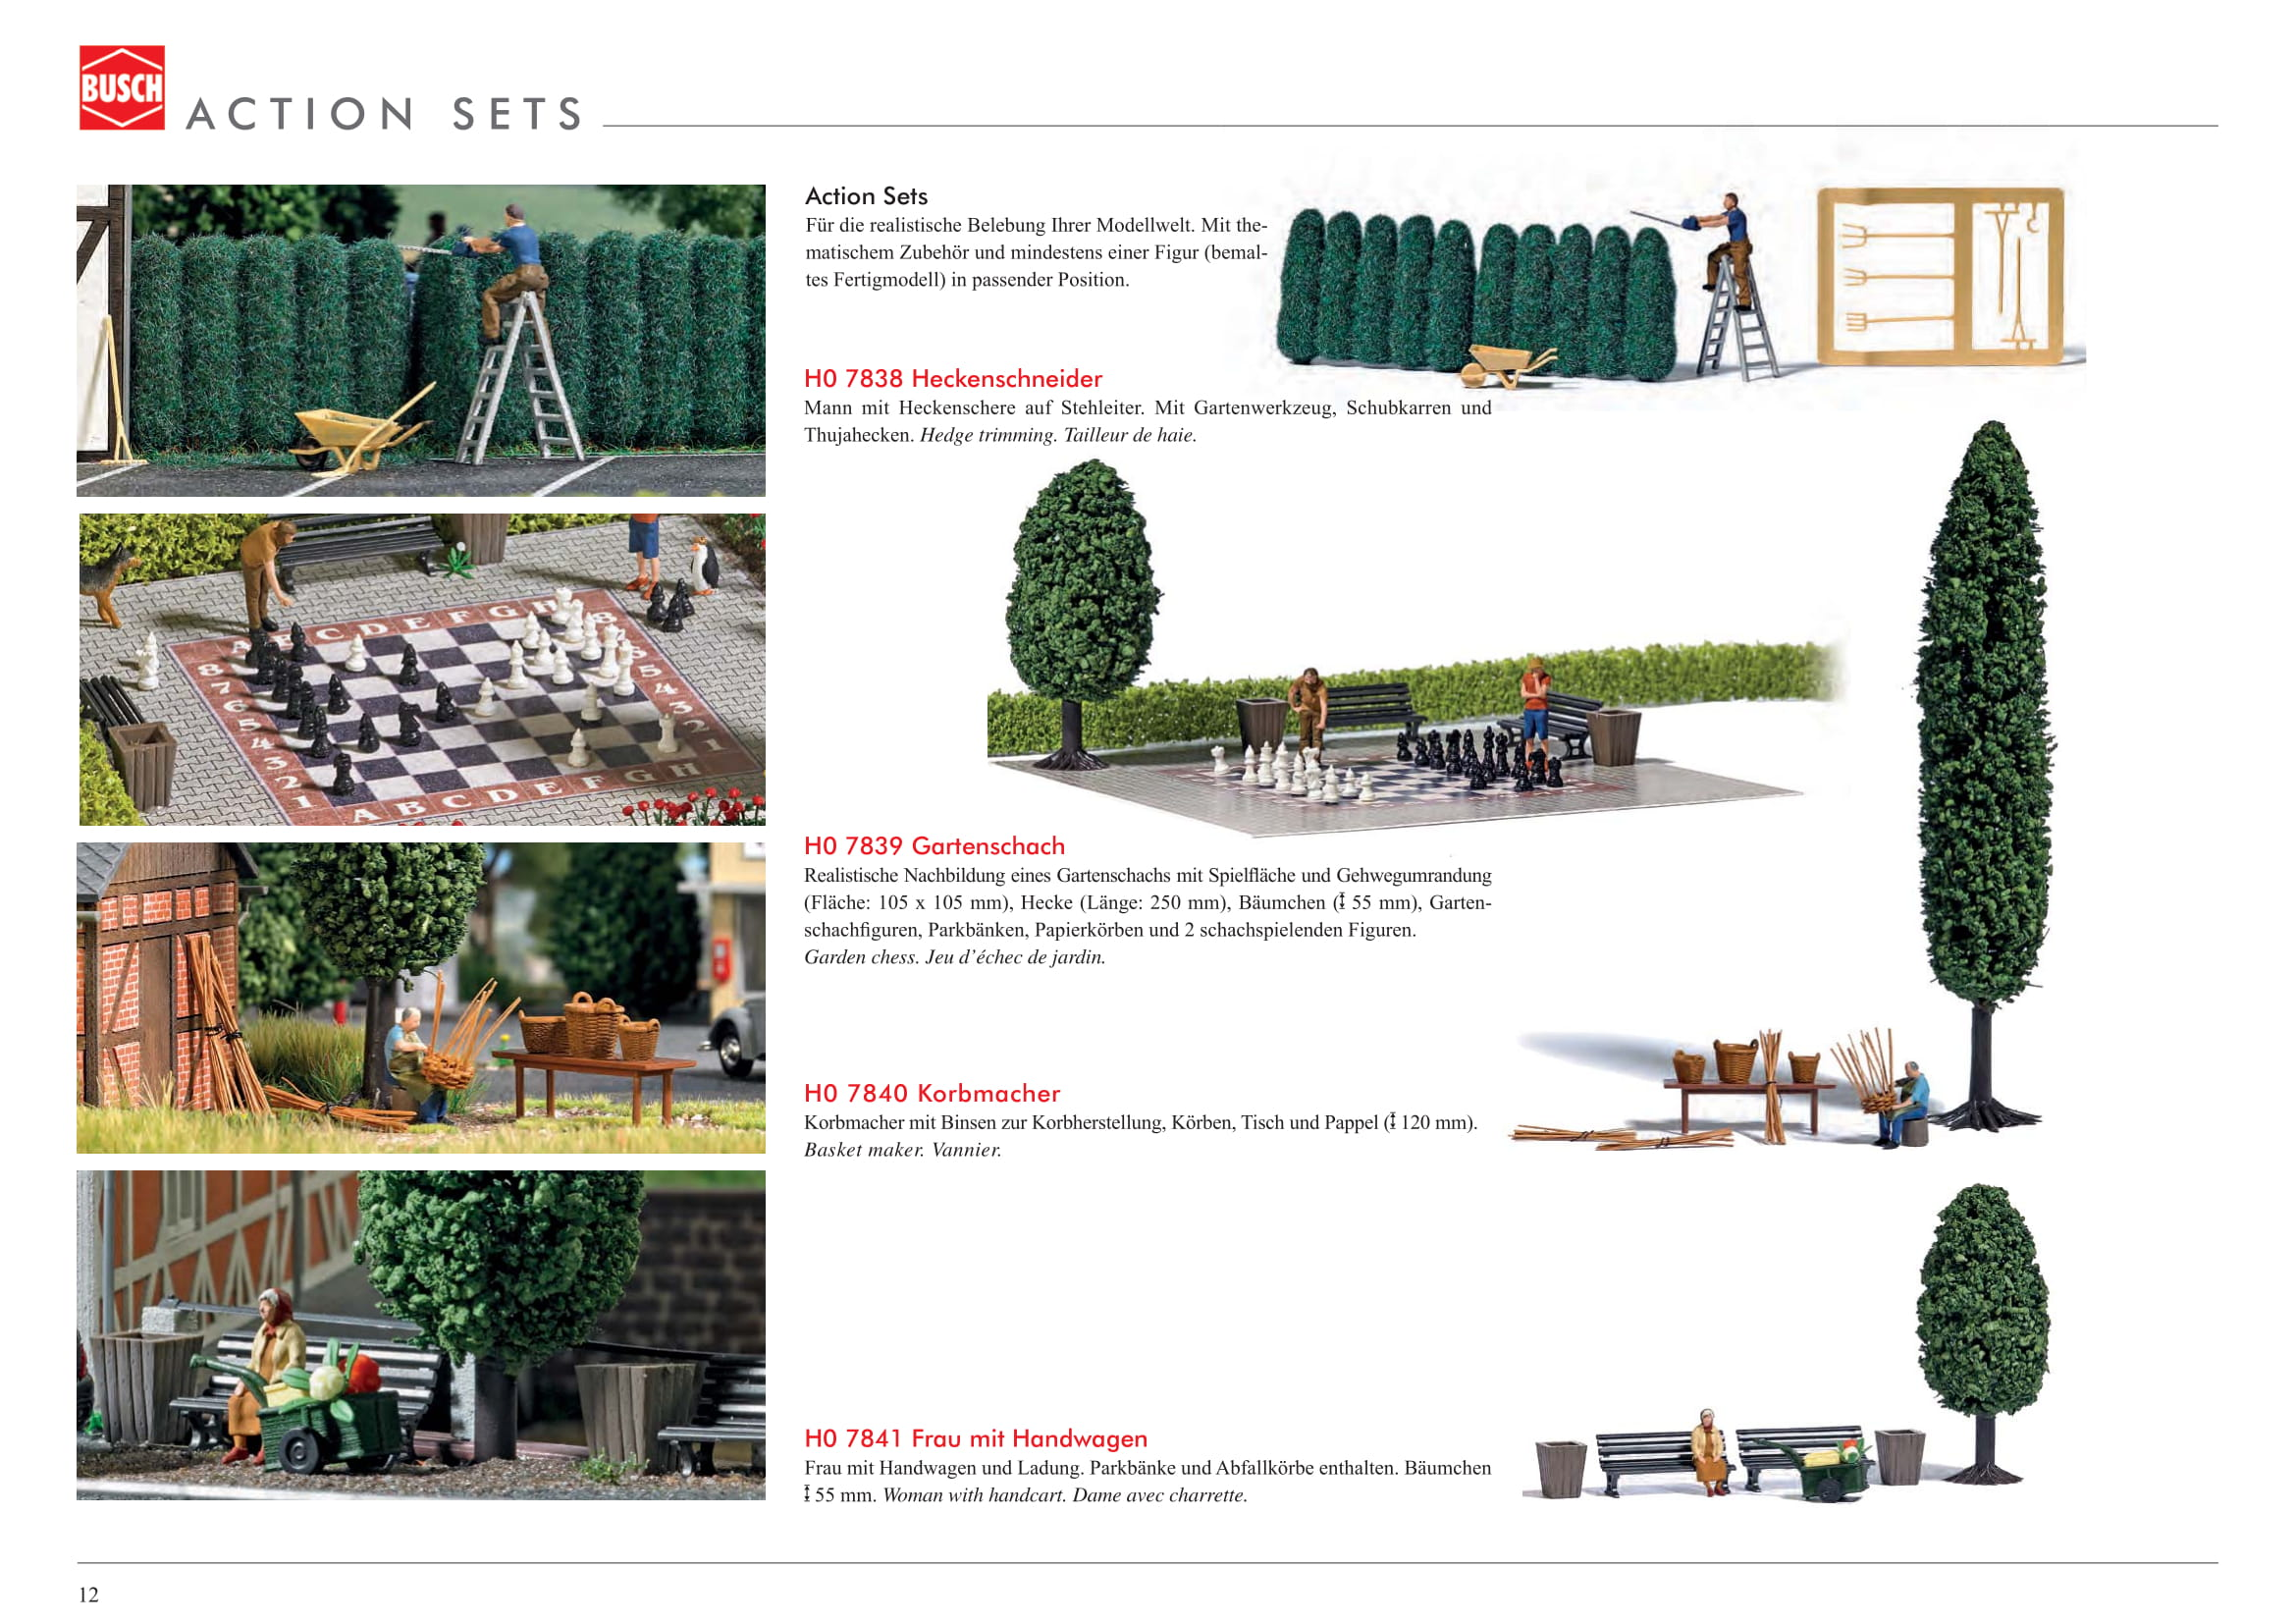 Table De Jardin Tressé Inspirant Busch News 2019 – toylandhobbymodelingmagazine Of 24 Charmant Table De Jardin Tressé